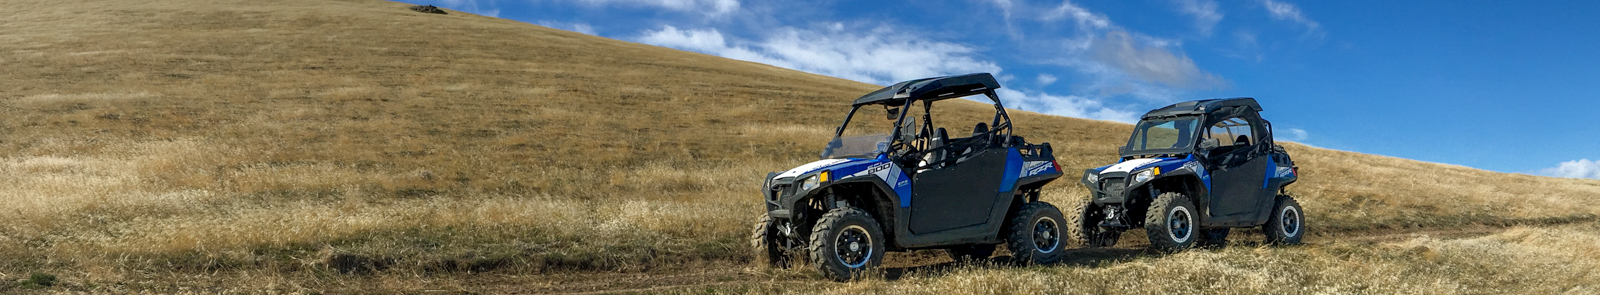 OBR ADV Gear UTV and SXS Products